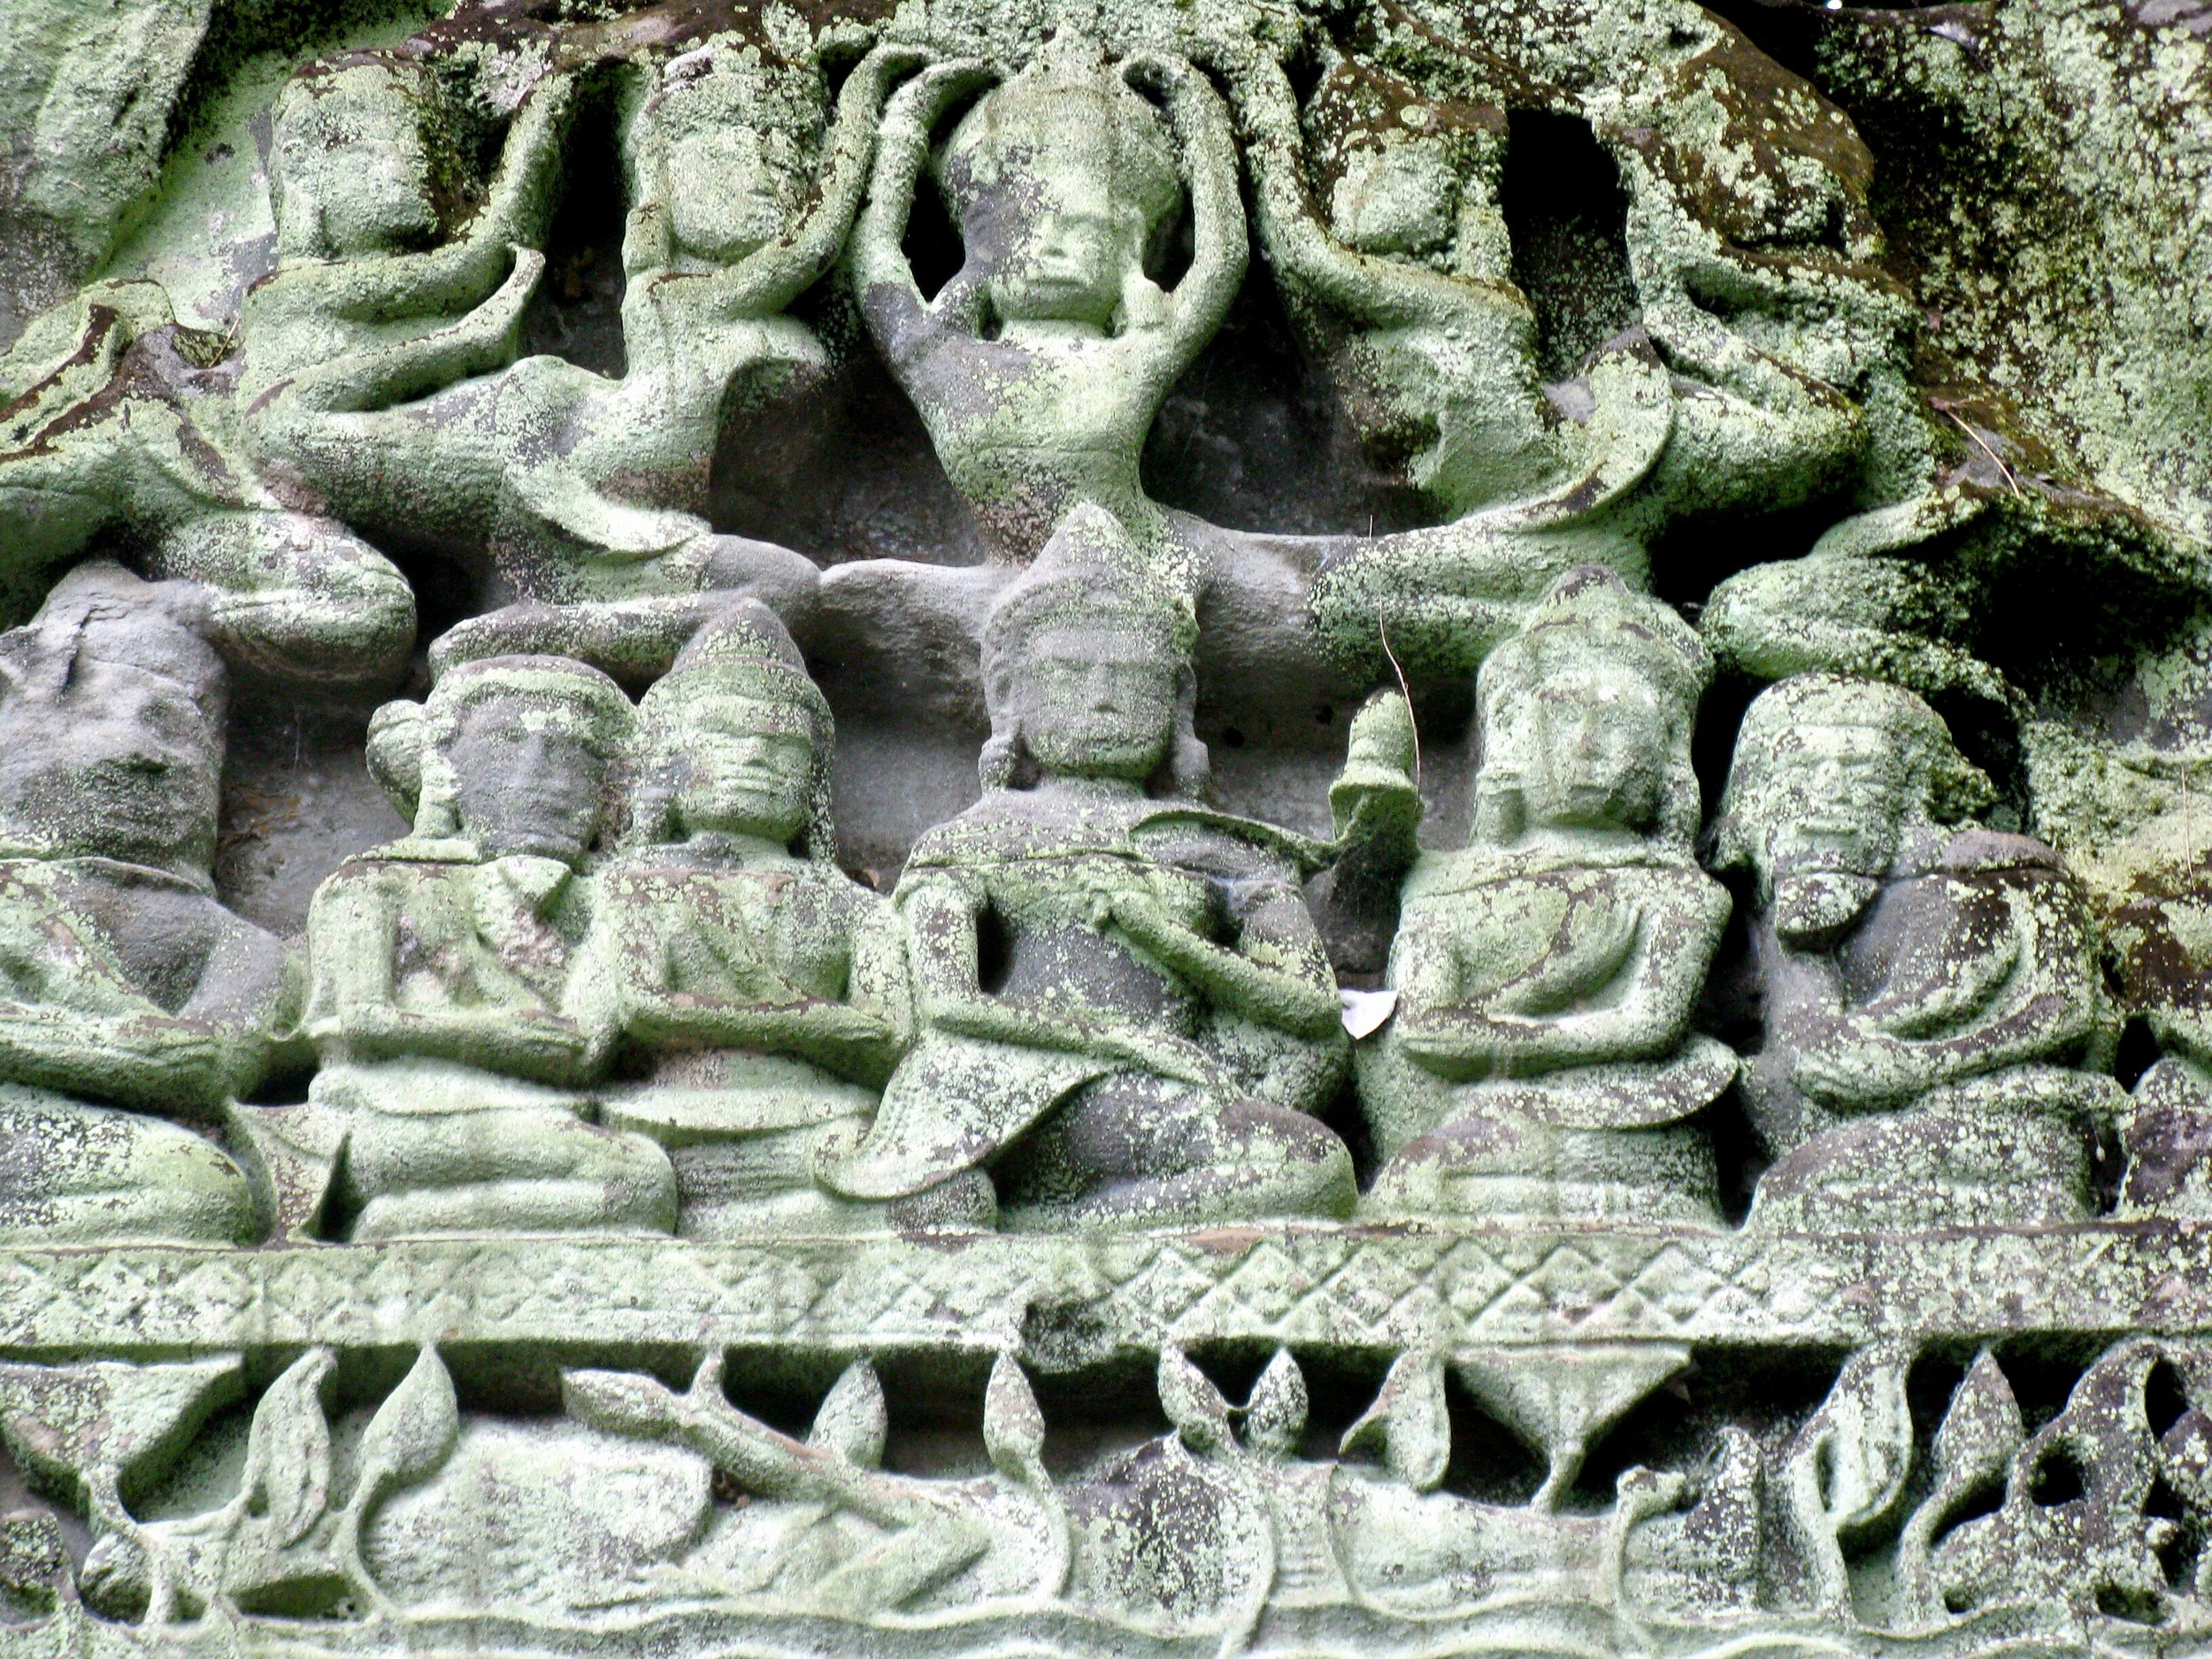 Lichen-covered carvings at Beng Mealea, where nature has reasserted itself